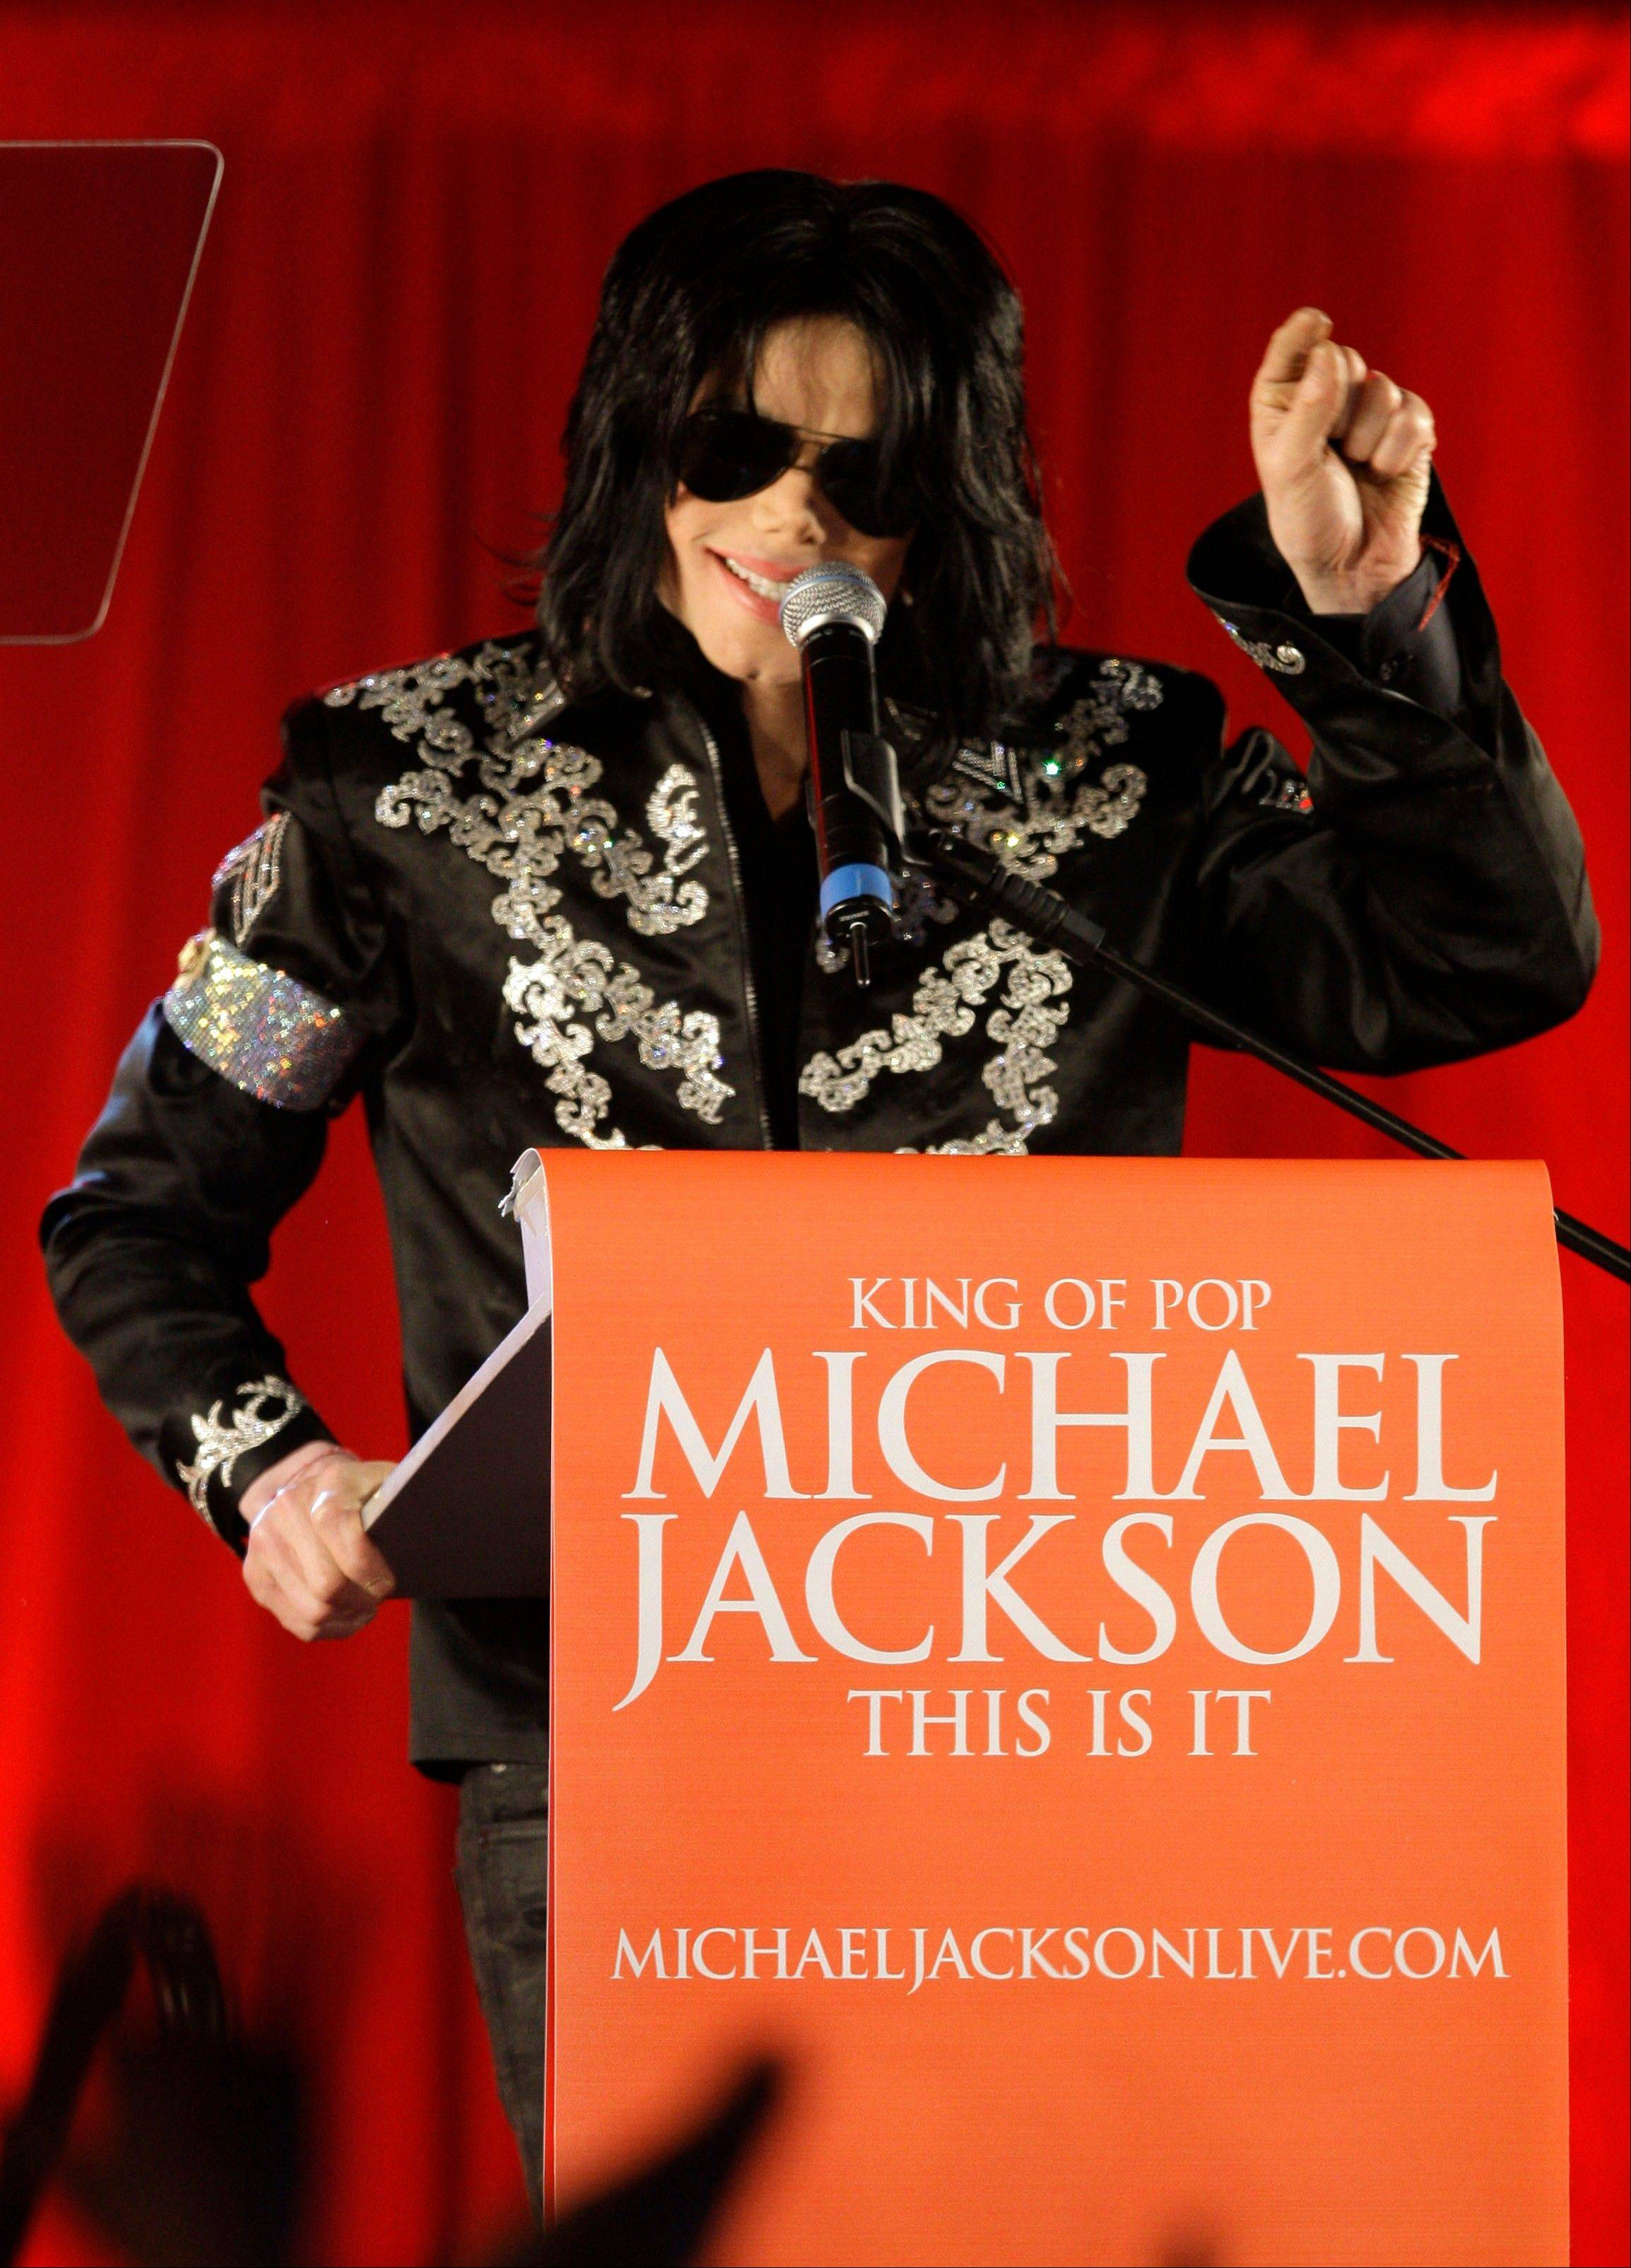 A Los Angeles jury on Wednesday, Oct. 2, 2013, rejected a negligence lawsuit by Michael Jackson's mother, Katherine Jackson, against AEG Live LLC that claimed the concert promoter was responsible for hiring the doctor convicted of causing her son's 2009 death.